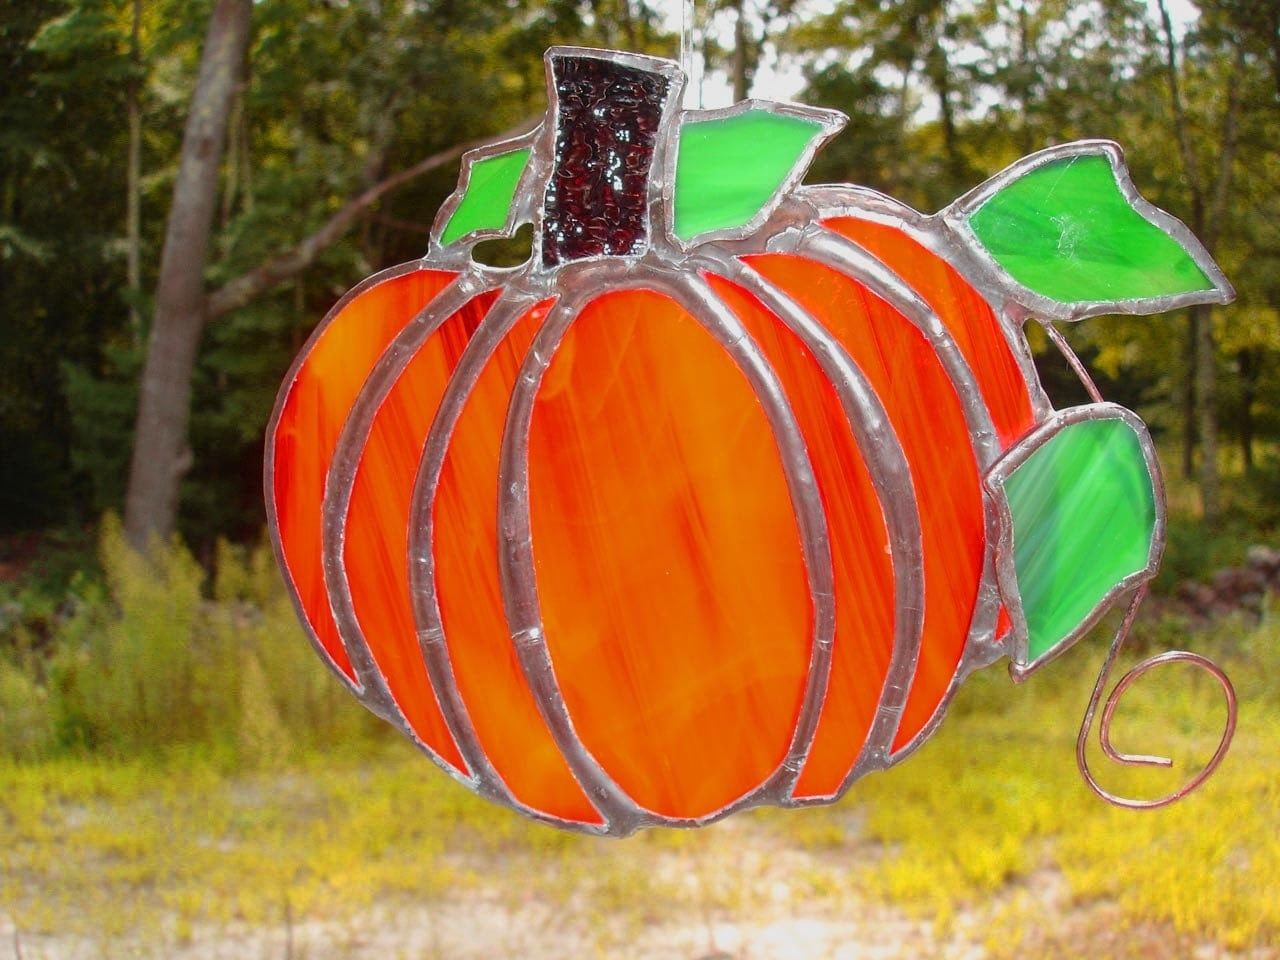 Pumpkin, stained glass suncatcher